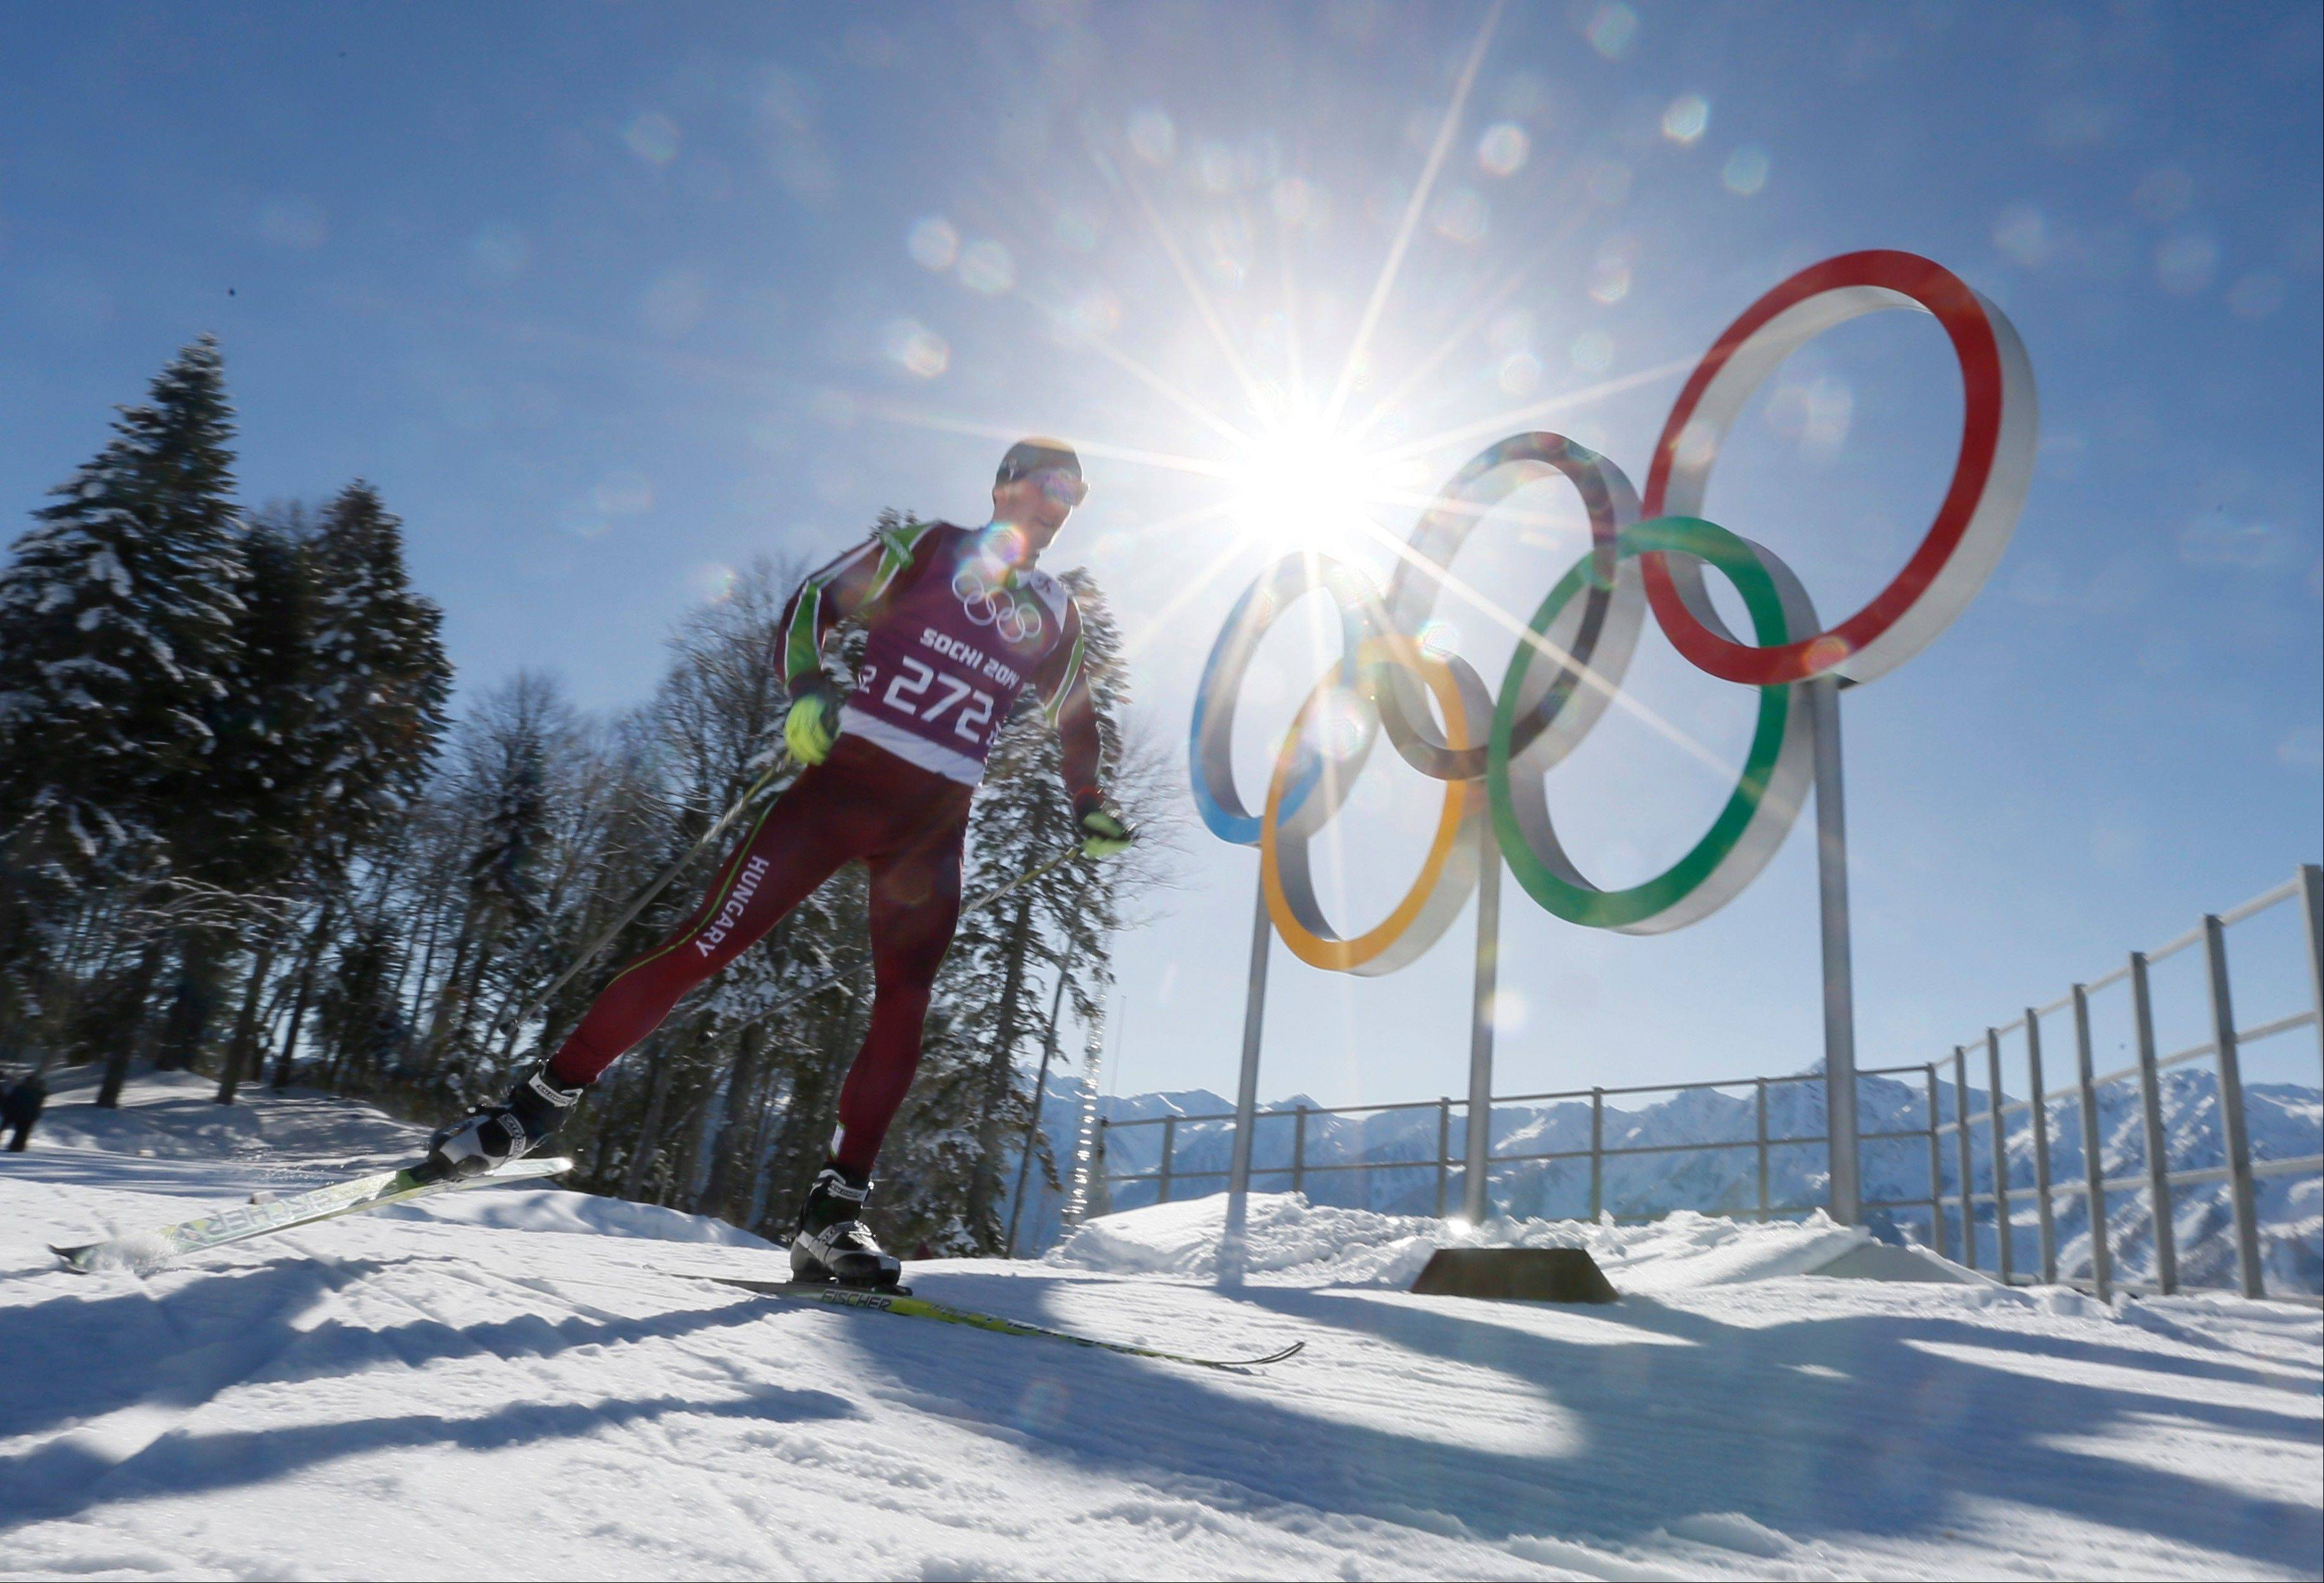 Hungary's Milan Szabo passes by Olympic rings as he trains in the Cross Country stadium of the 2014 Winter Olympics, Tuesday, Feb. 4, 2014, in Krasnaya Polyana, Russia.